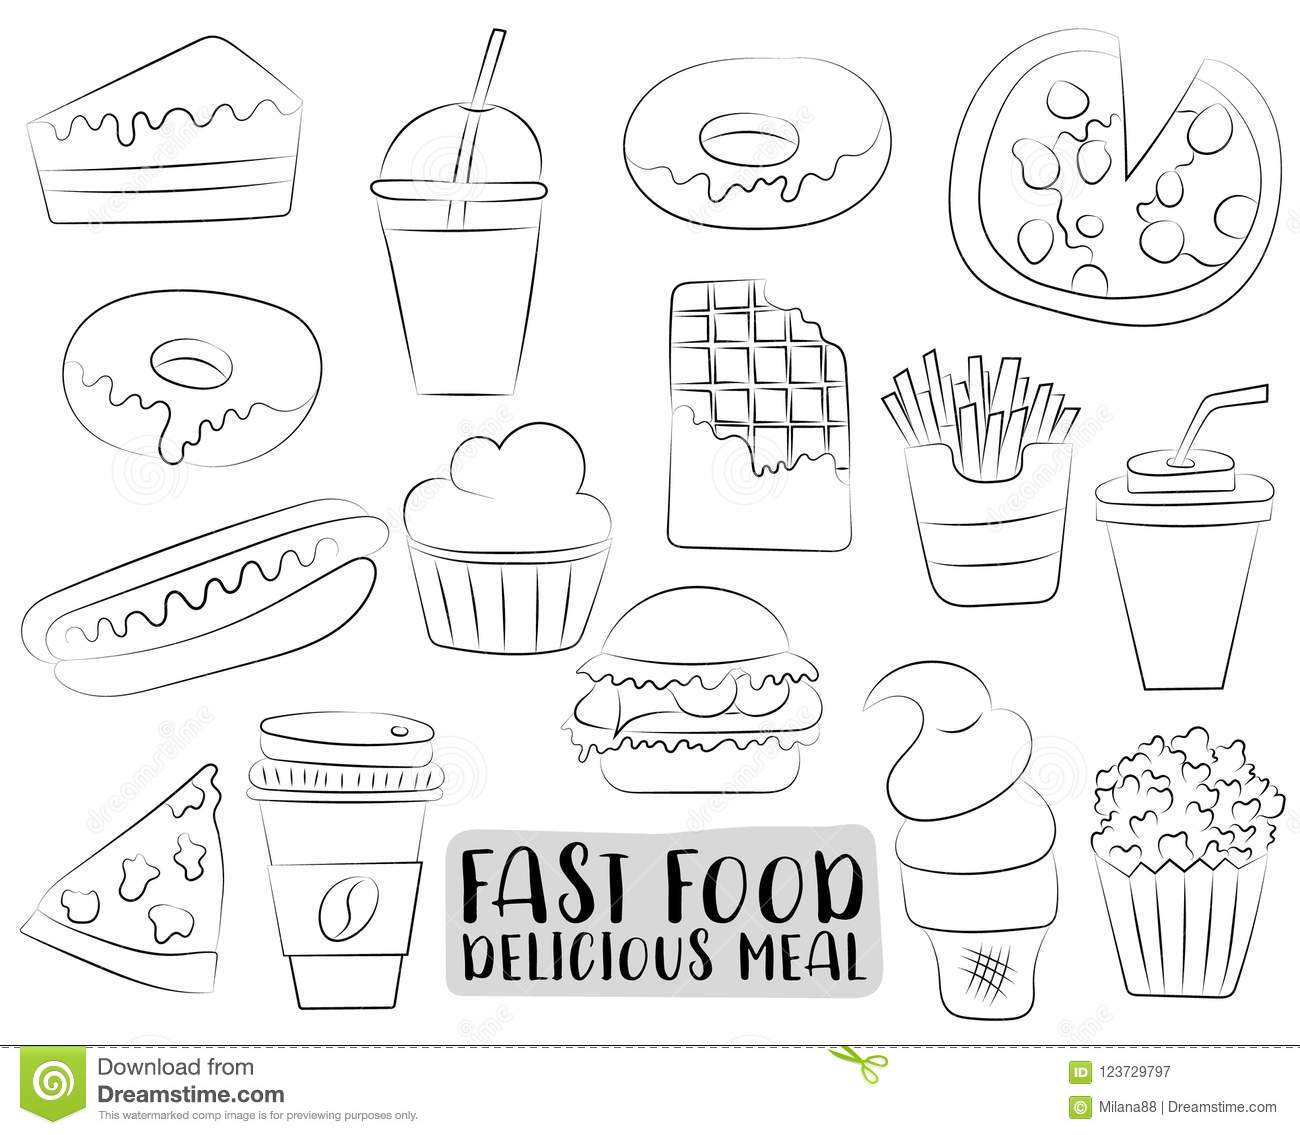 Fast Food Cartoon Icons And Objects Set. Black And White